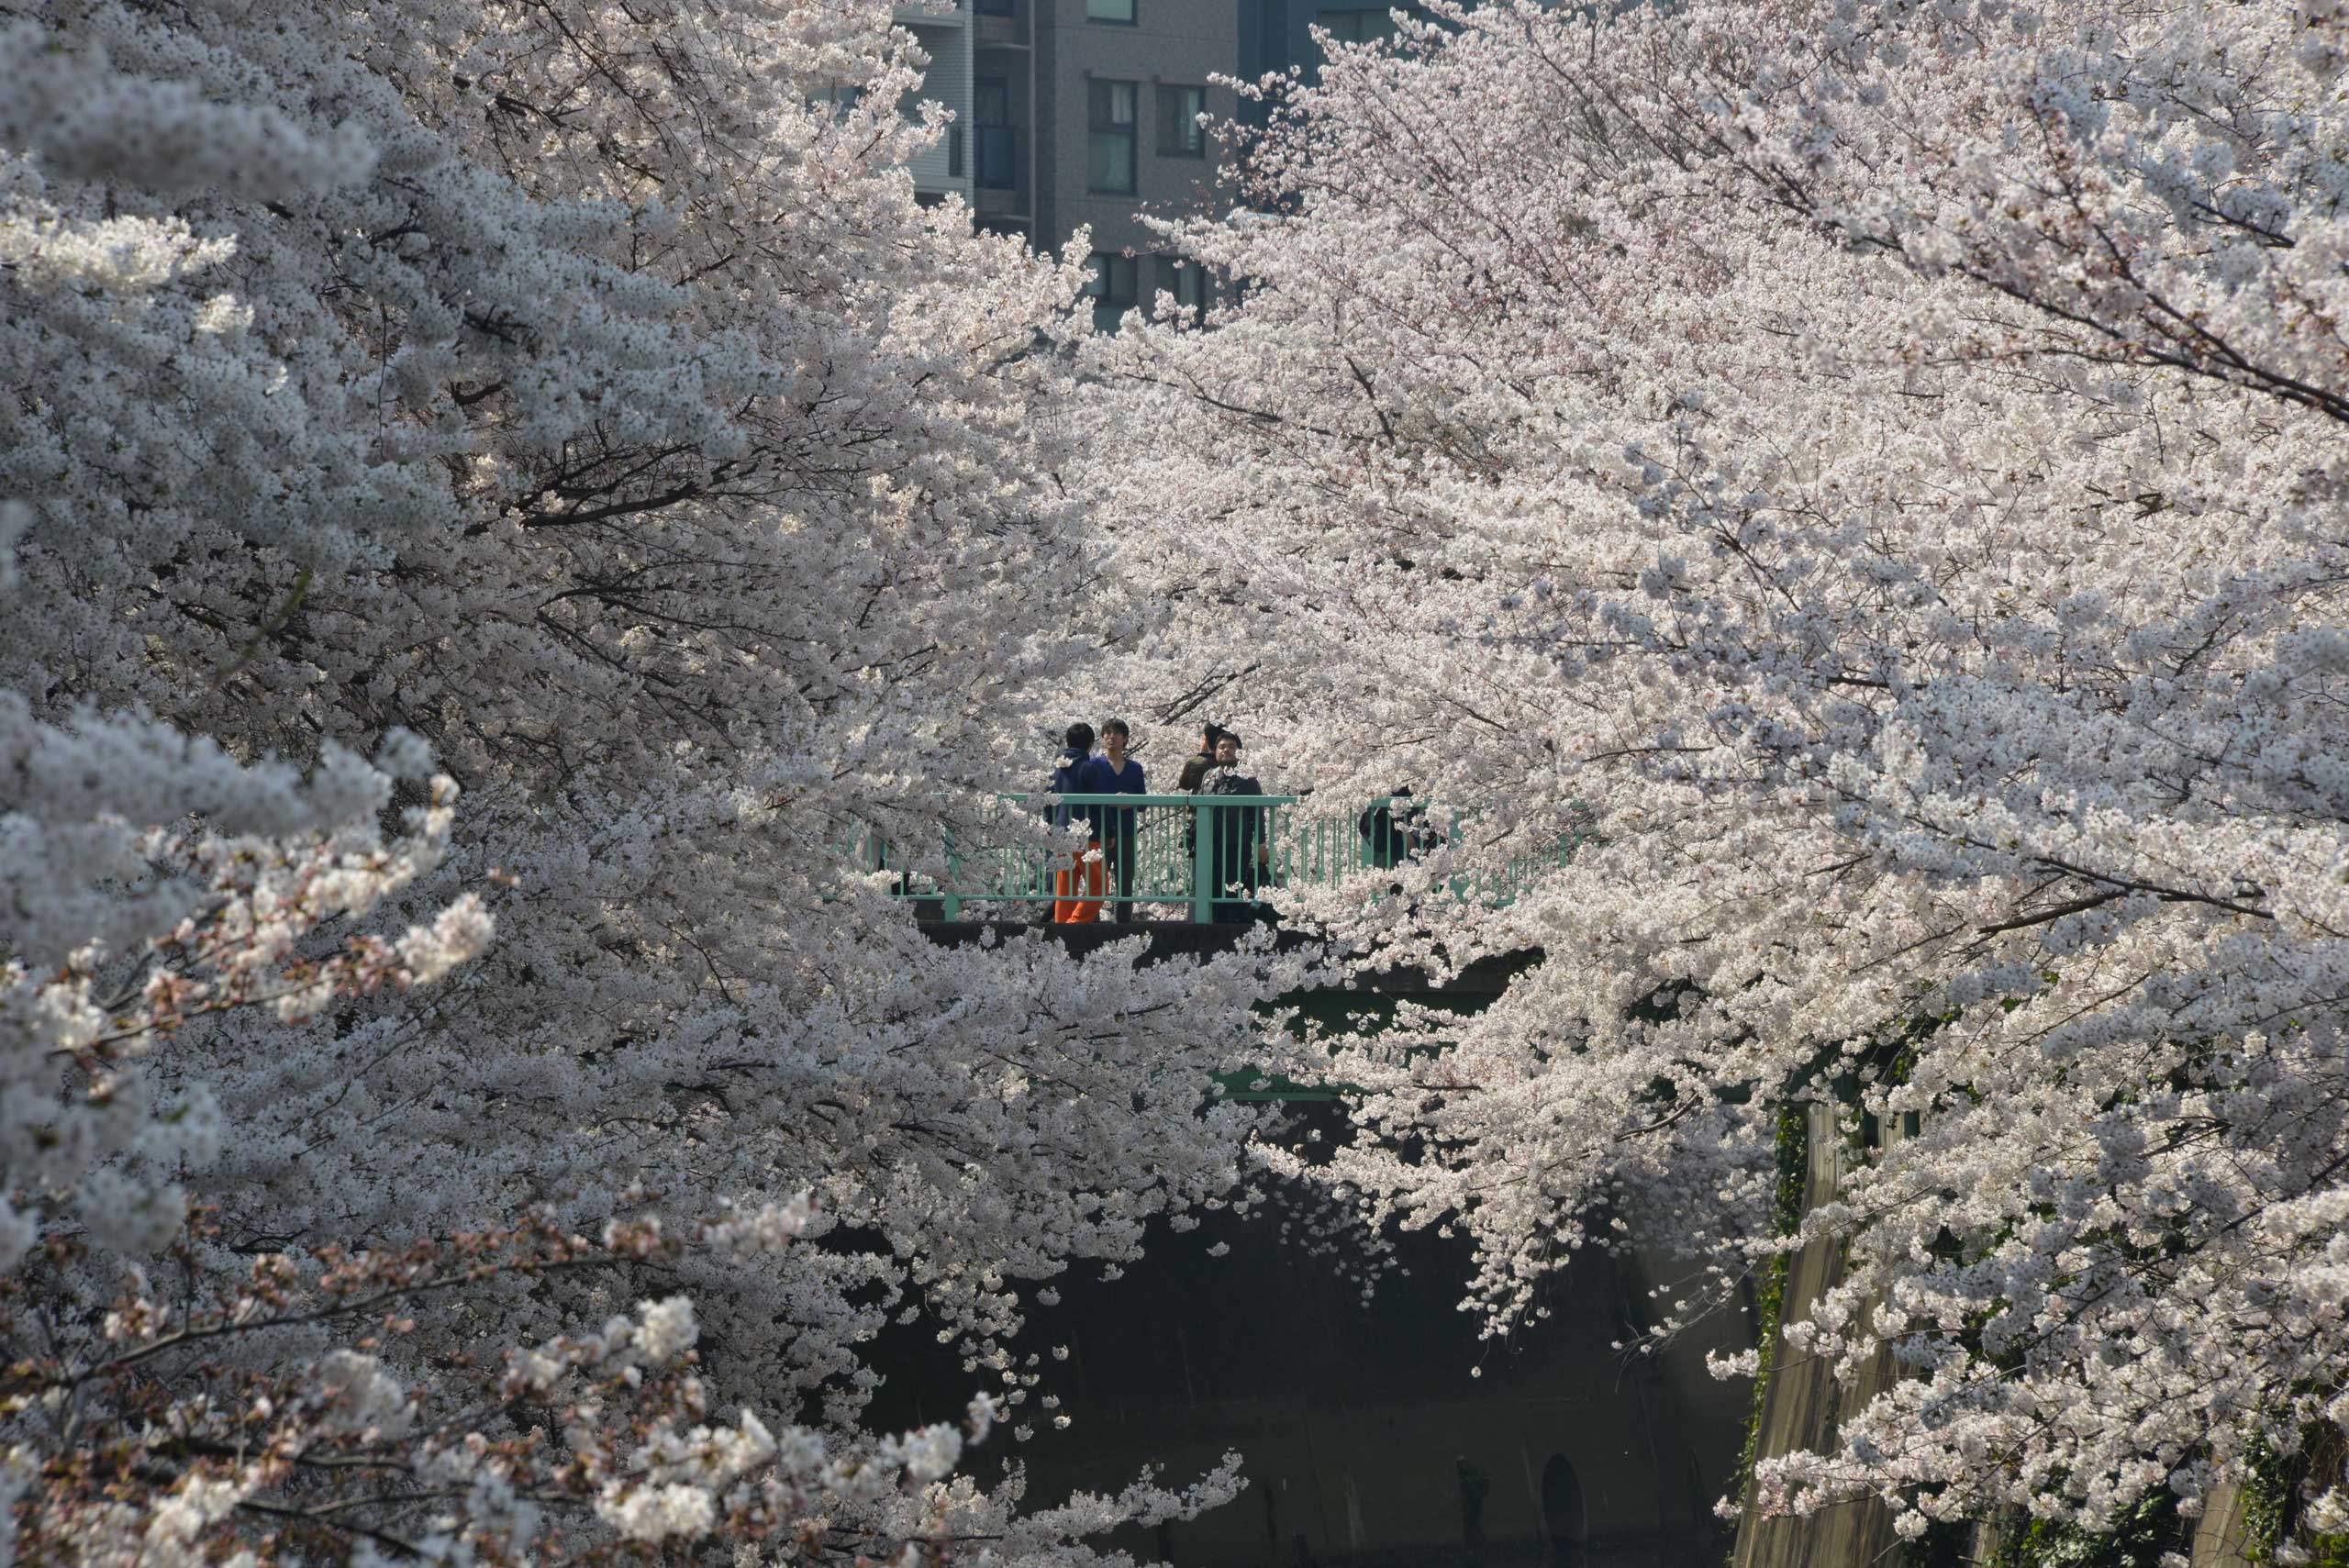 A man takes a picture of cherry blossoms in full bloom in Tokyo, March 30, 2015.